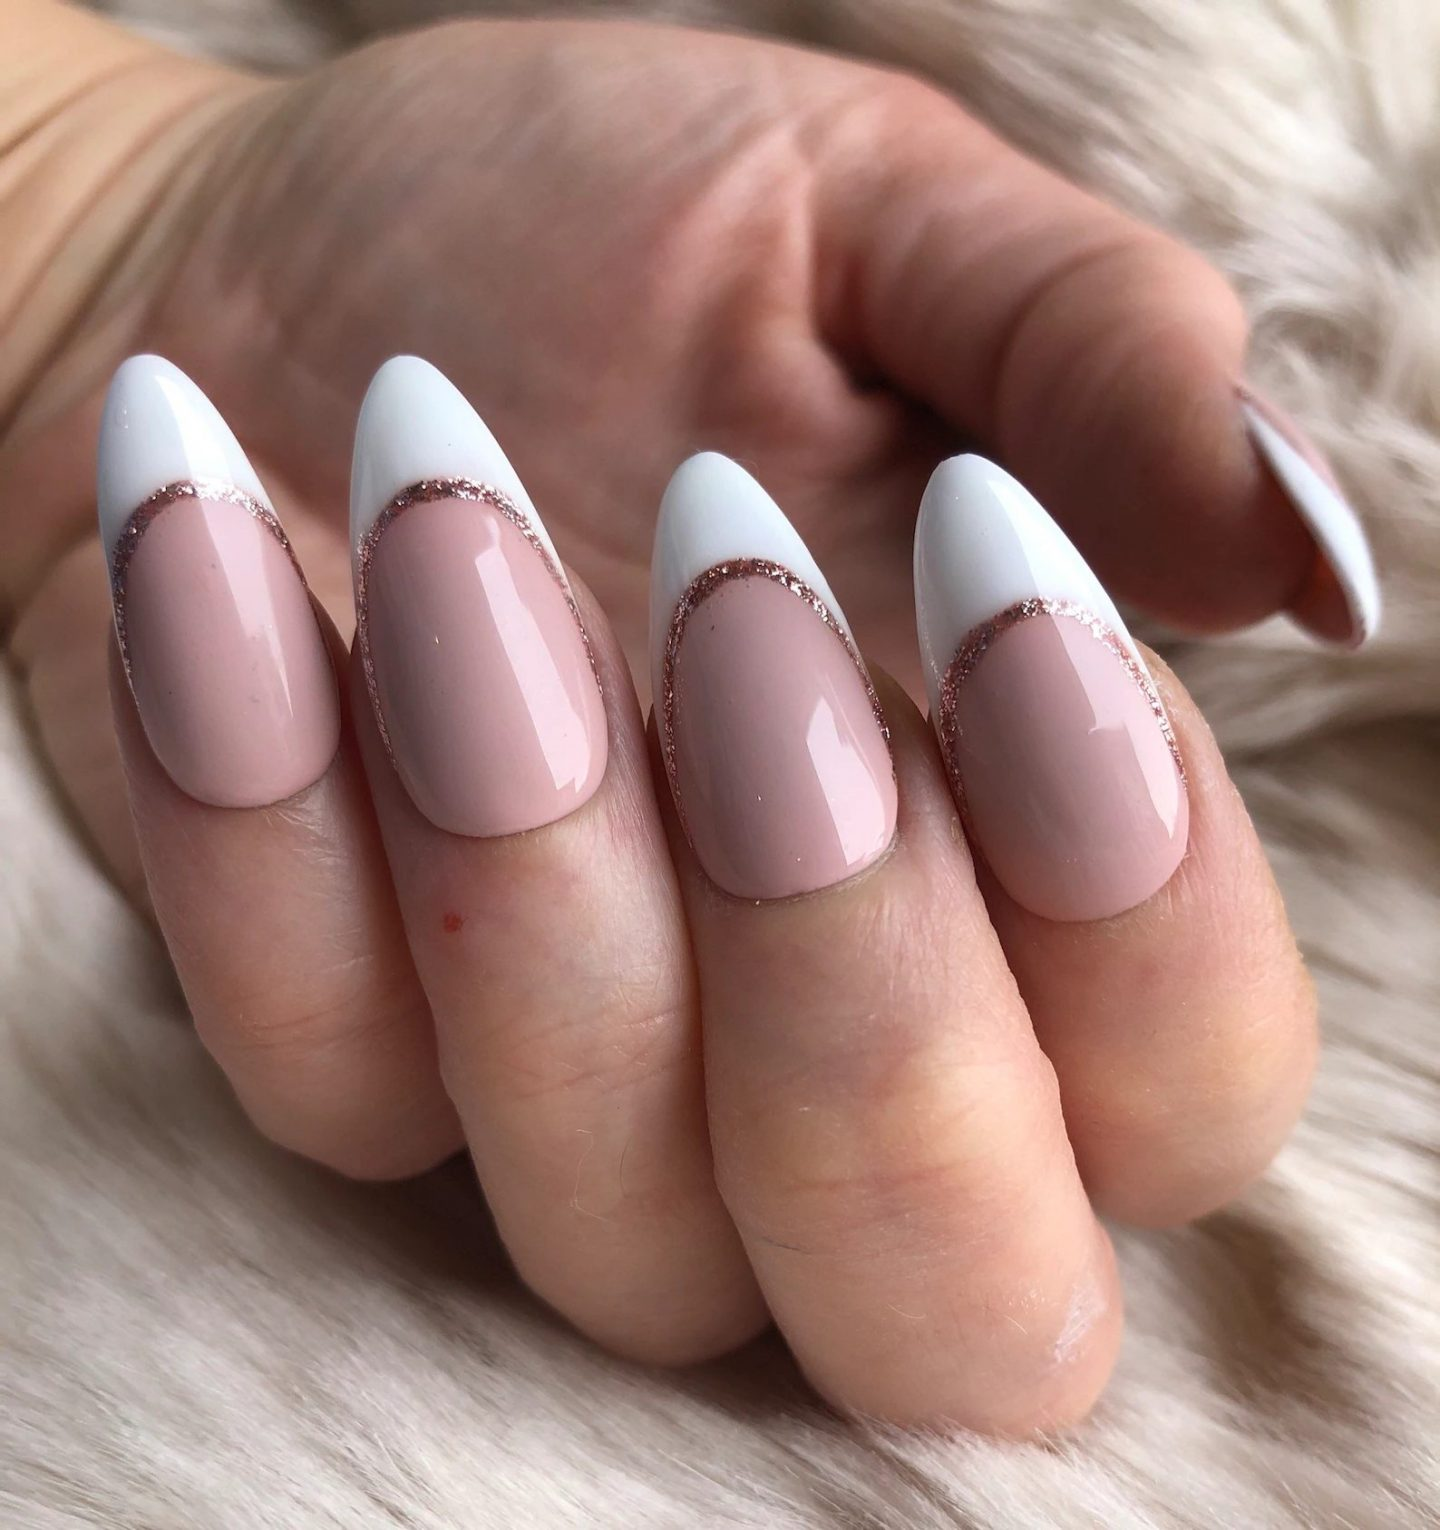 Minimalist French tip nails with rose gold glitter